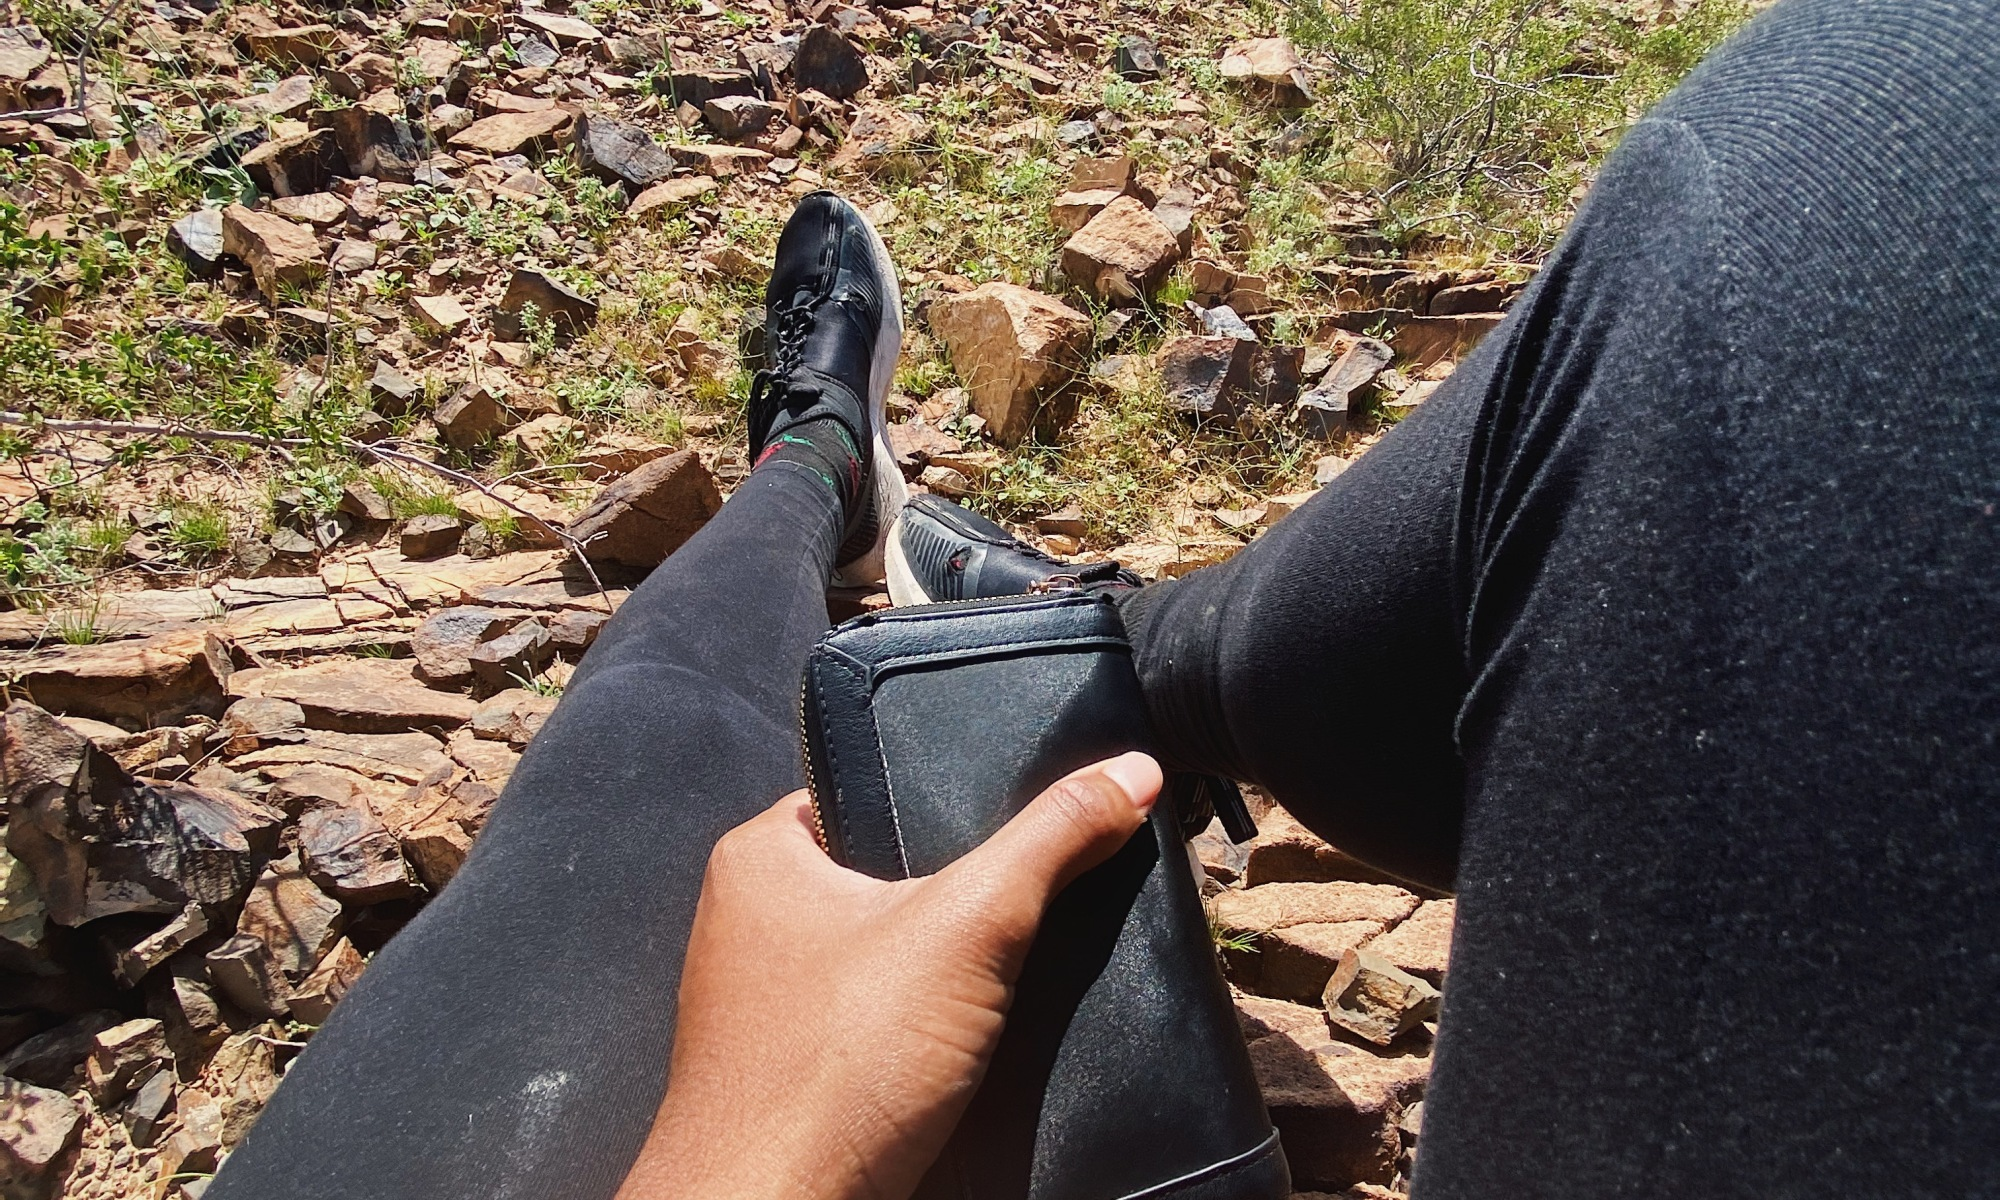 A pair of legs in black joggers overhangs a rocky desert landscape sprouted with sparse foliage.